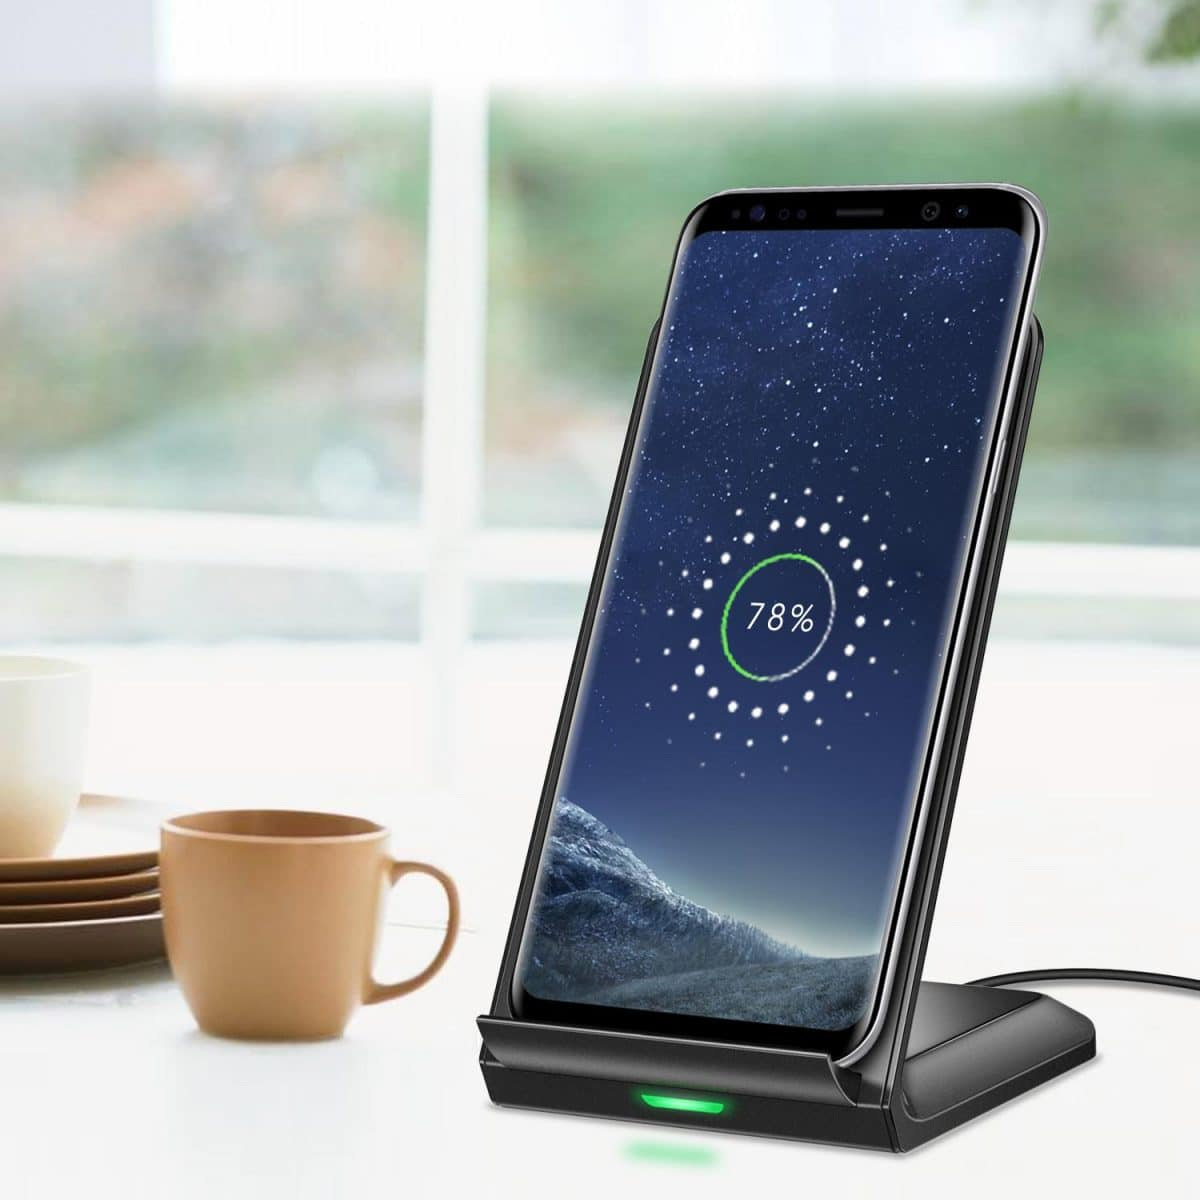 CHOETECH Wireless Fast Charging Smartphone Stand